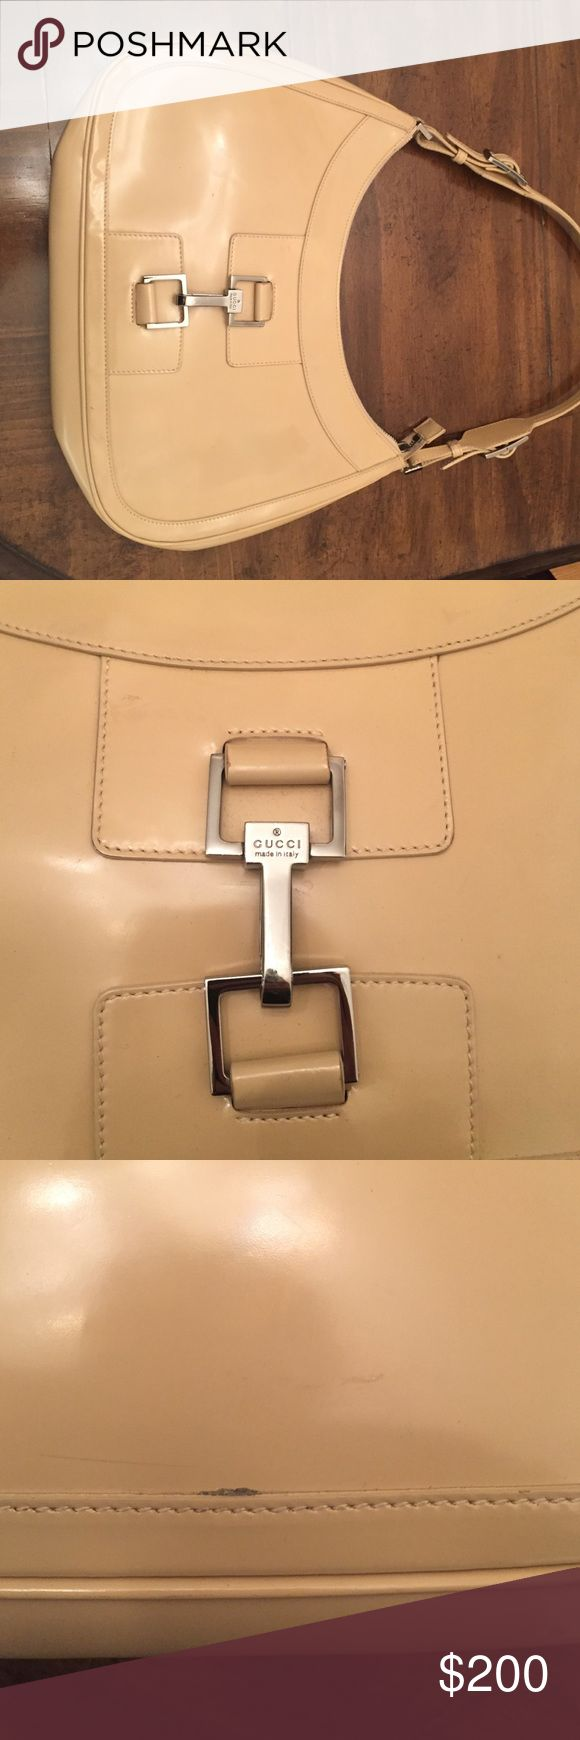 Gucci handbag Gucci beige patent leather hobo style bag. 100% authentic. Used with a few scratches. Gucci Bags Hobos